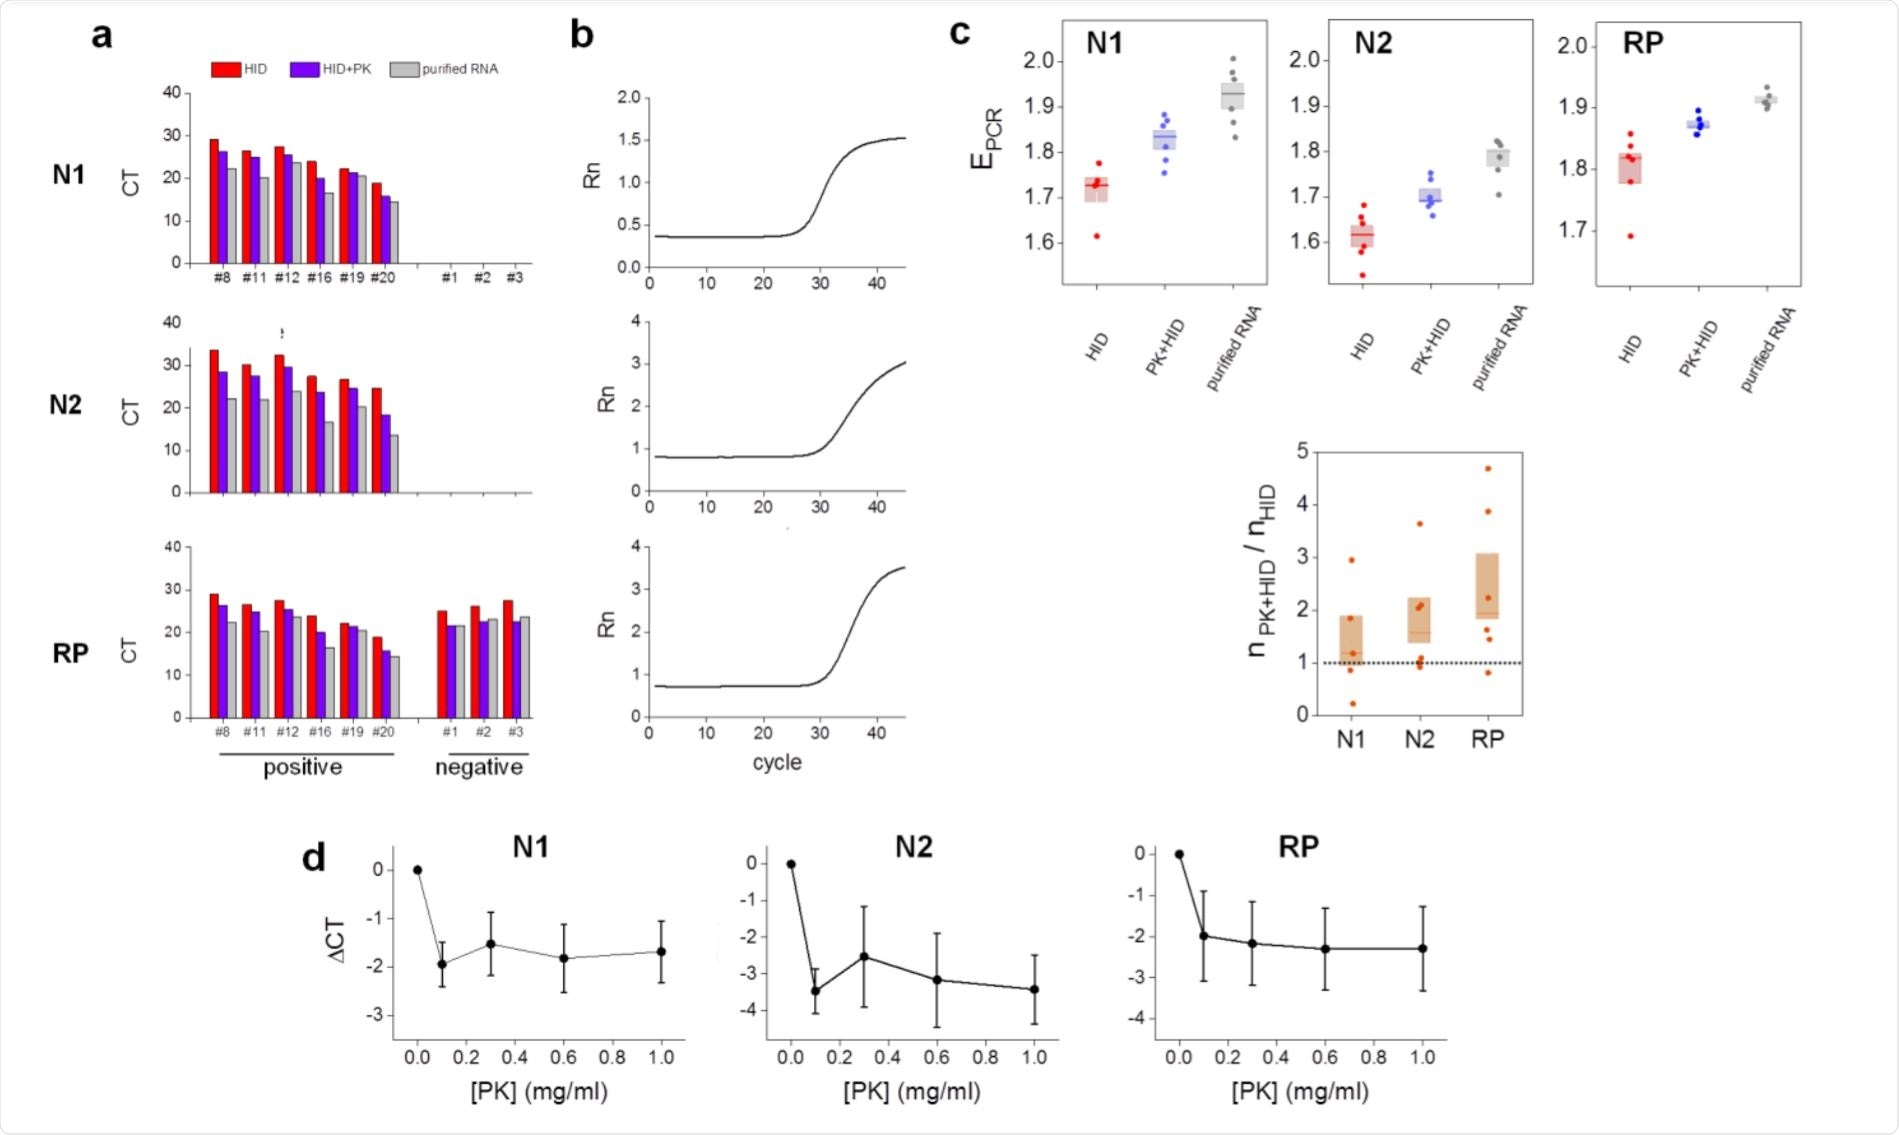 Proteinase K improves the performance of the heat inactivation method in RT-qPCR determinations of SARS-CoV-2.